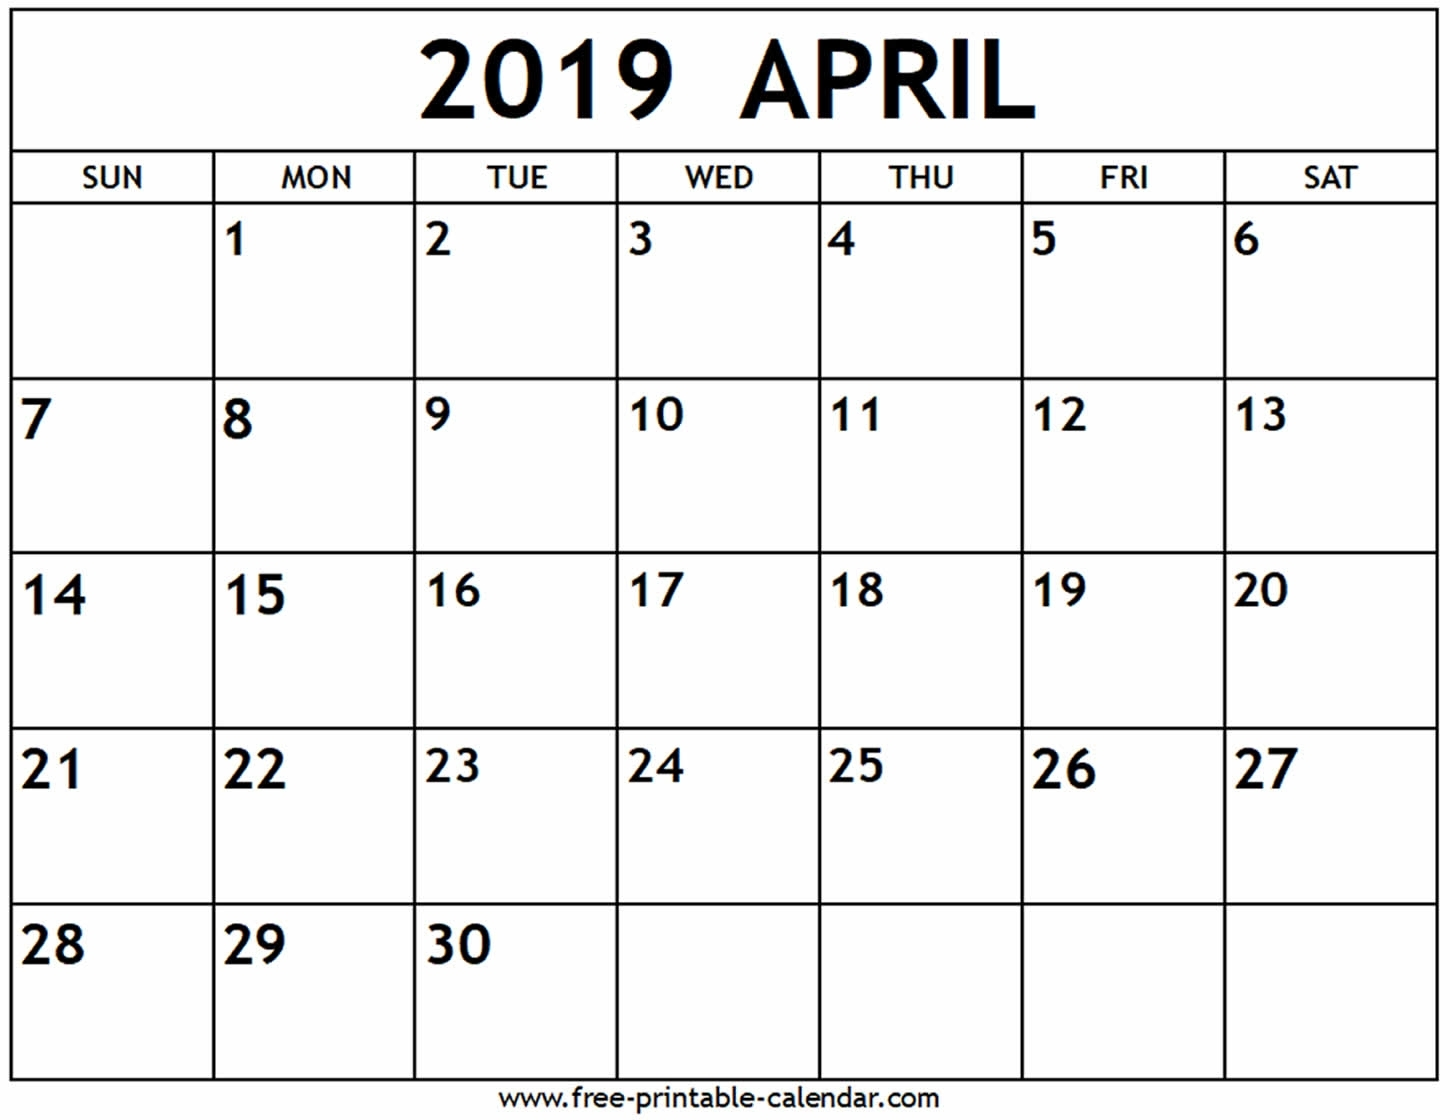 April 2019 Calendar - Free-Printable-Calendar pertaining to Free Calendars To Print Without Downloading